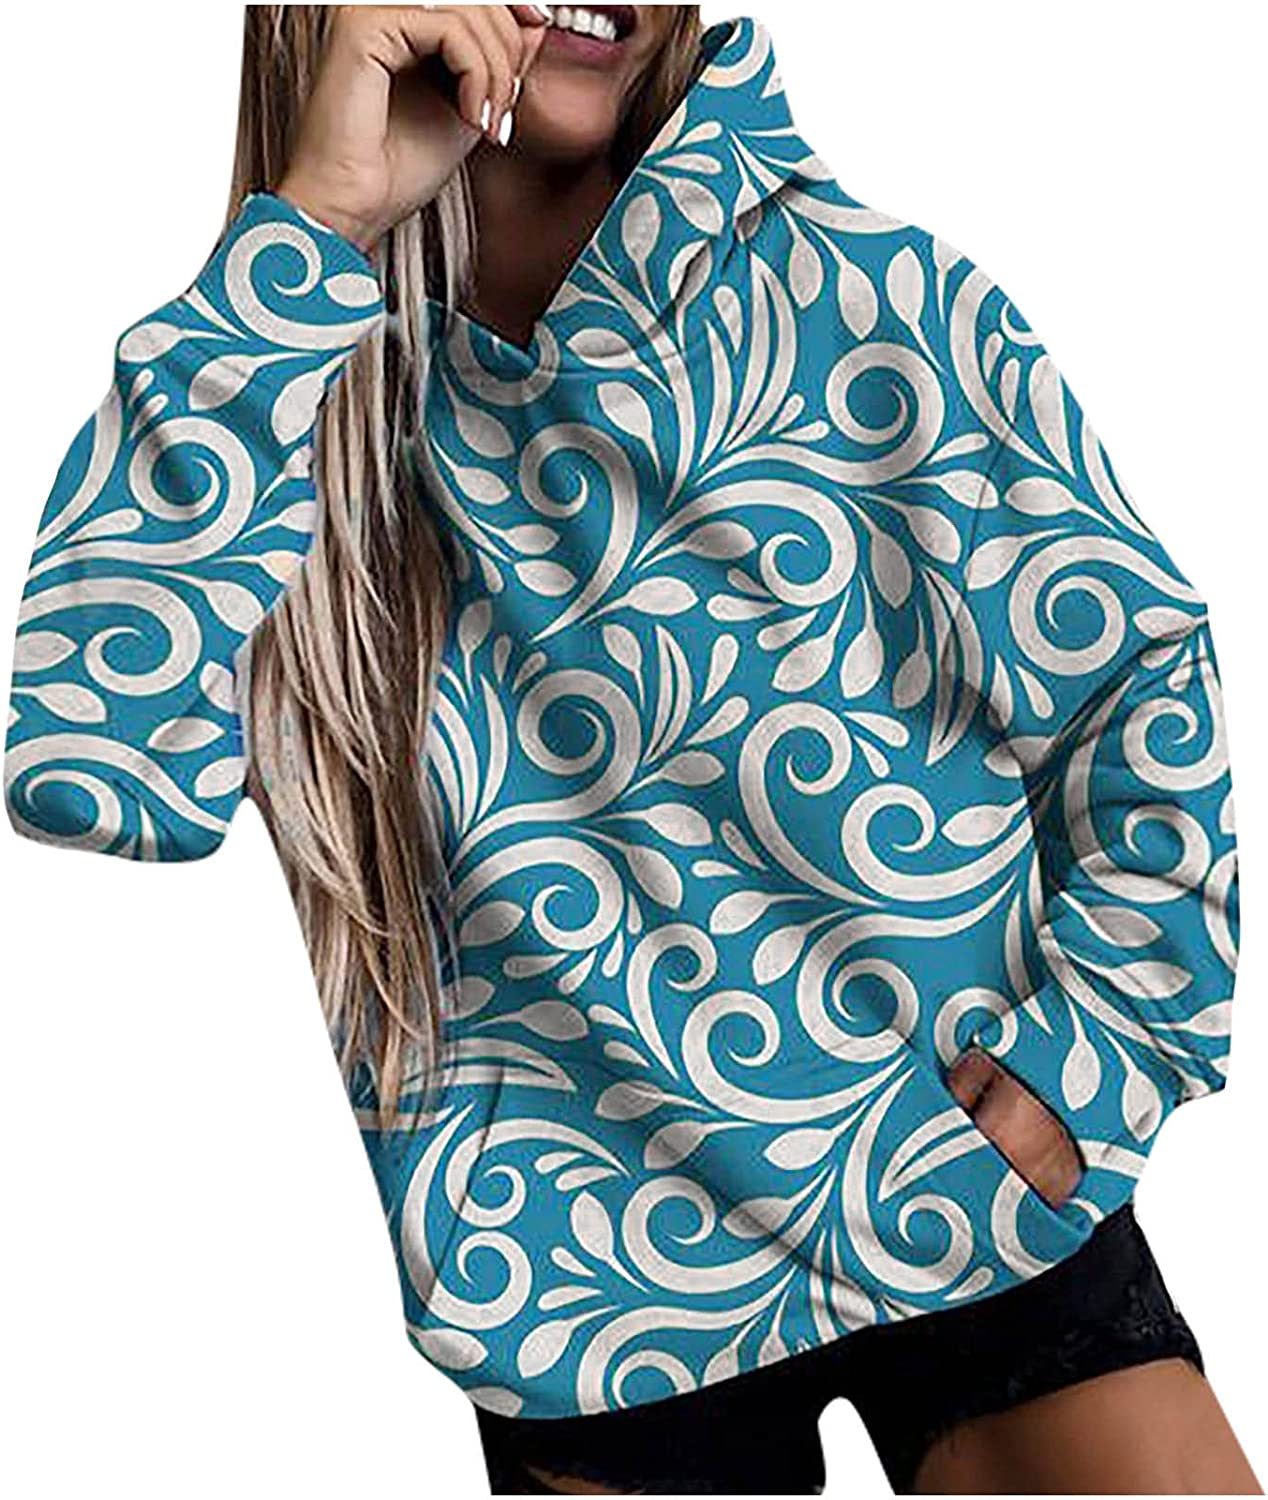 Hoodies for Women Pullover Graphic Floral Print Sweatshirt Casual Long Sleeve Pocket Shirt Fall All-Match Tops